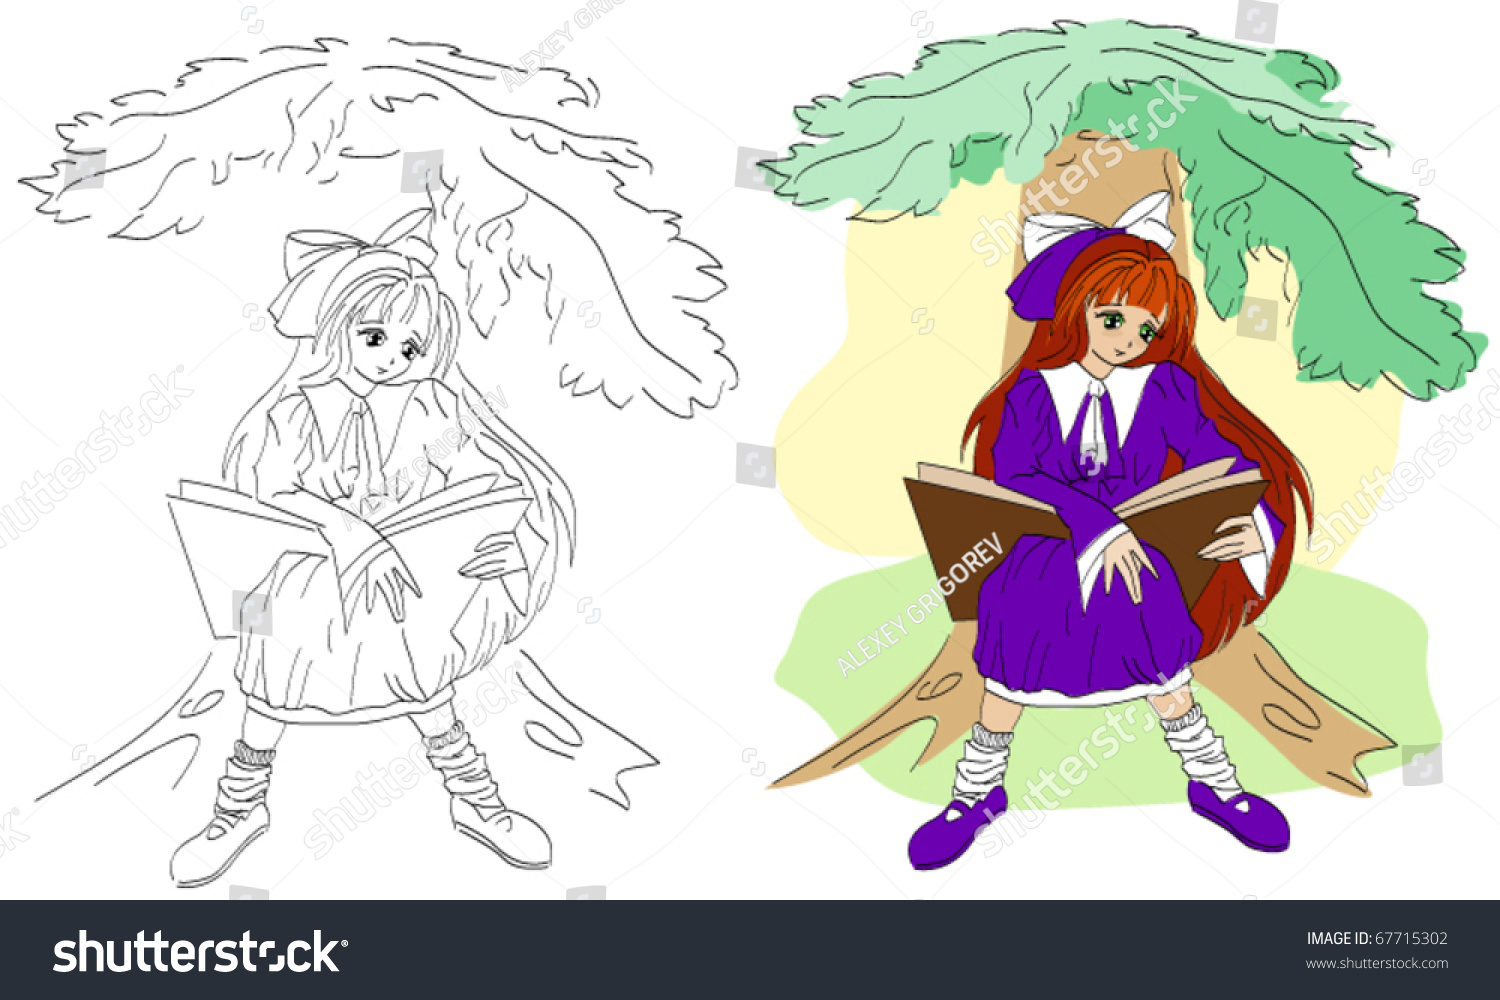 stock vector anime girl reading open book coloring illustration in vector format 67715302 together with a girl reading a book coloring page free printable coloring pages on girl reading a book coloring further girl reading coloring page for kids free printable picture on girl reading a book coloring including people and places coloring pages boy and girl coloring free on girl reading a book coloring also girl reading with blocks school coloring pages free printable on girl reading a book coloring